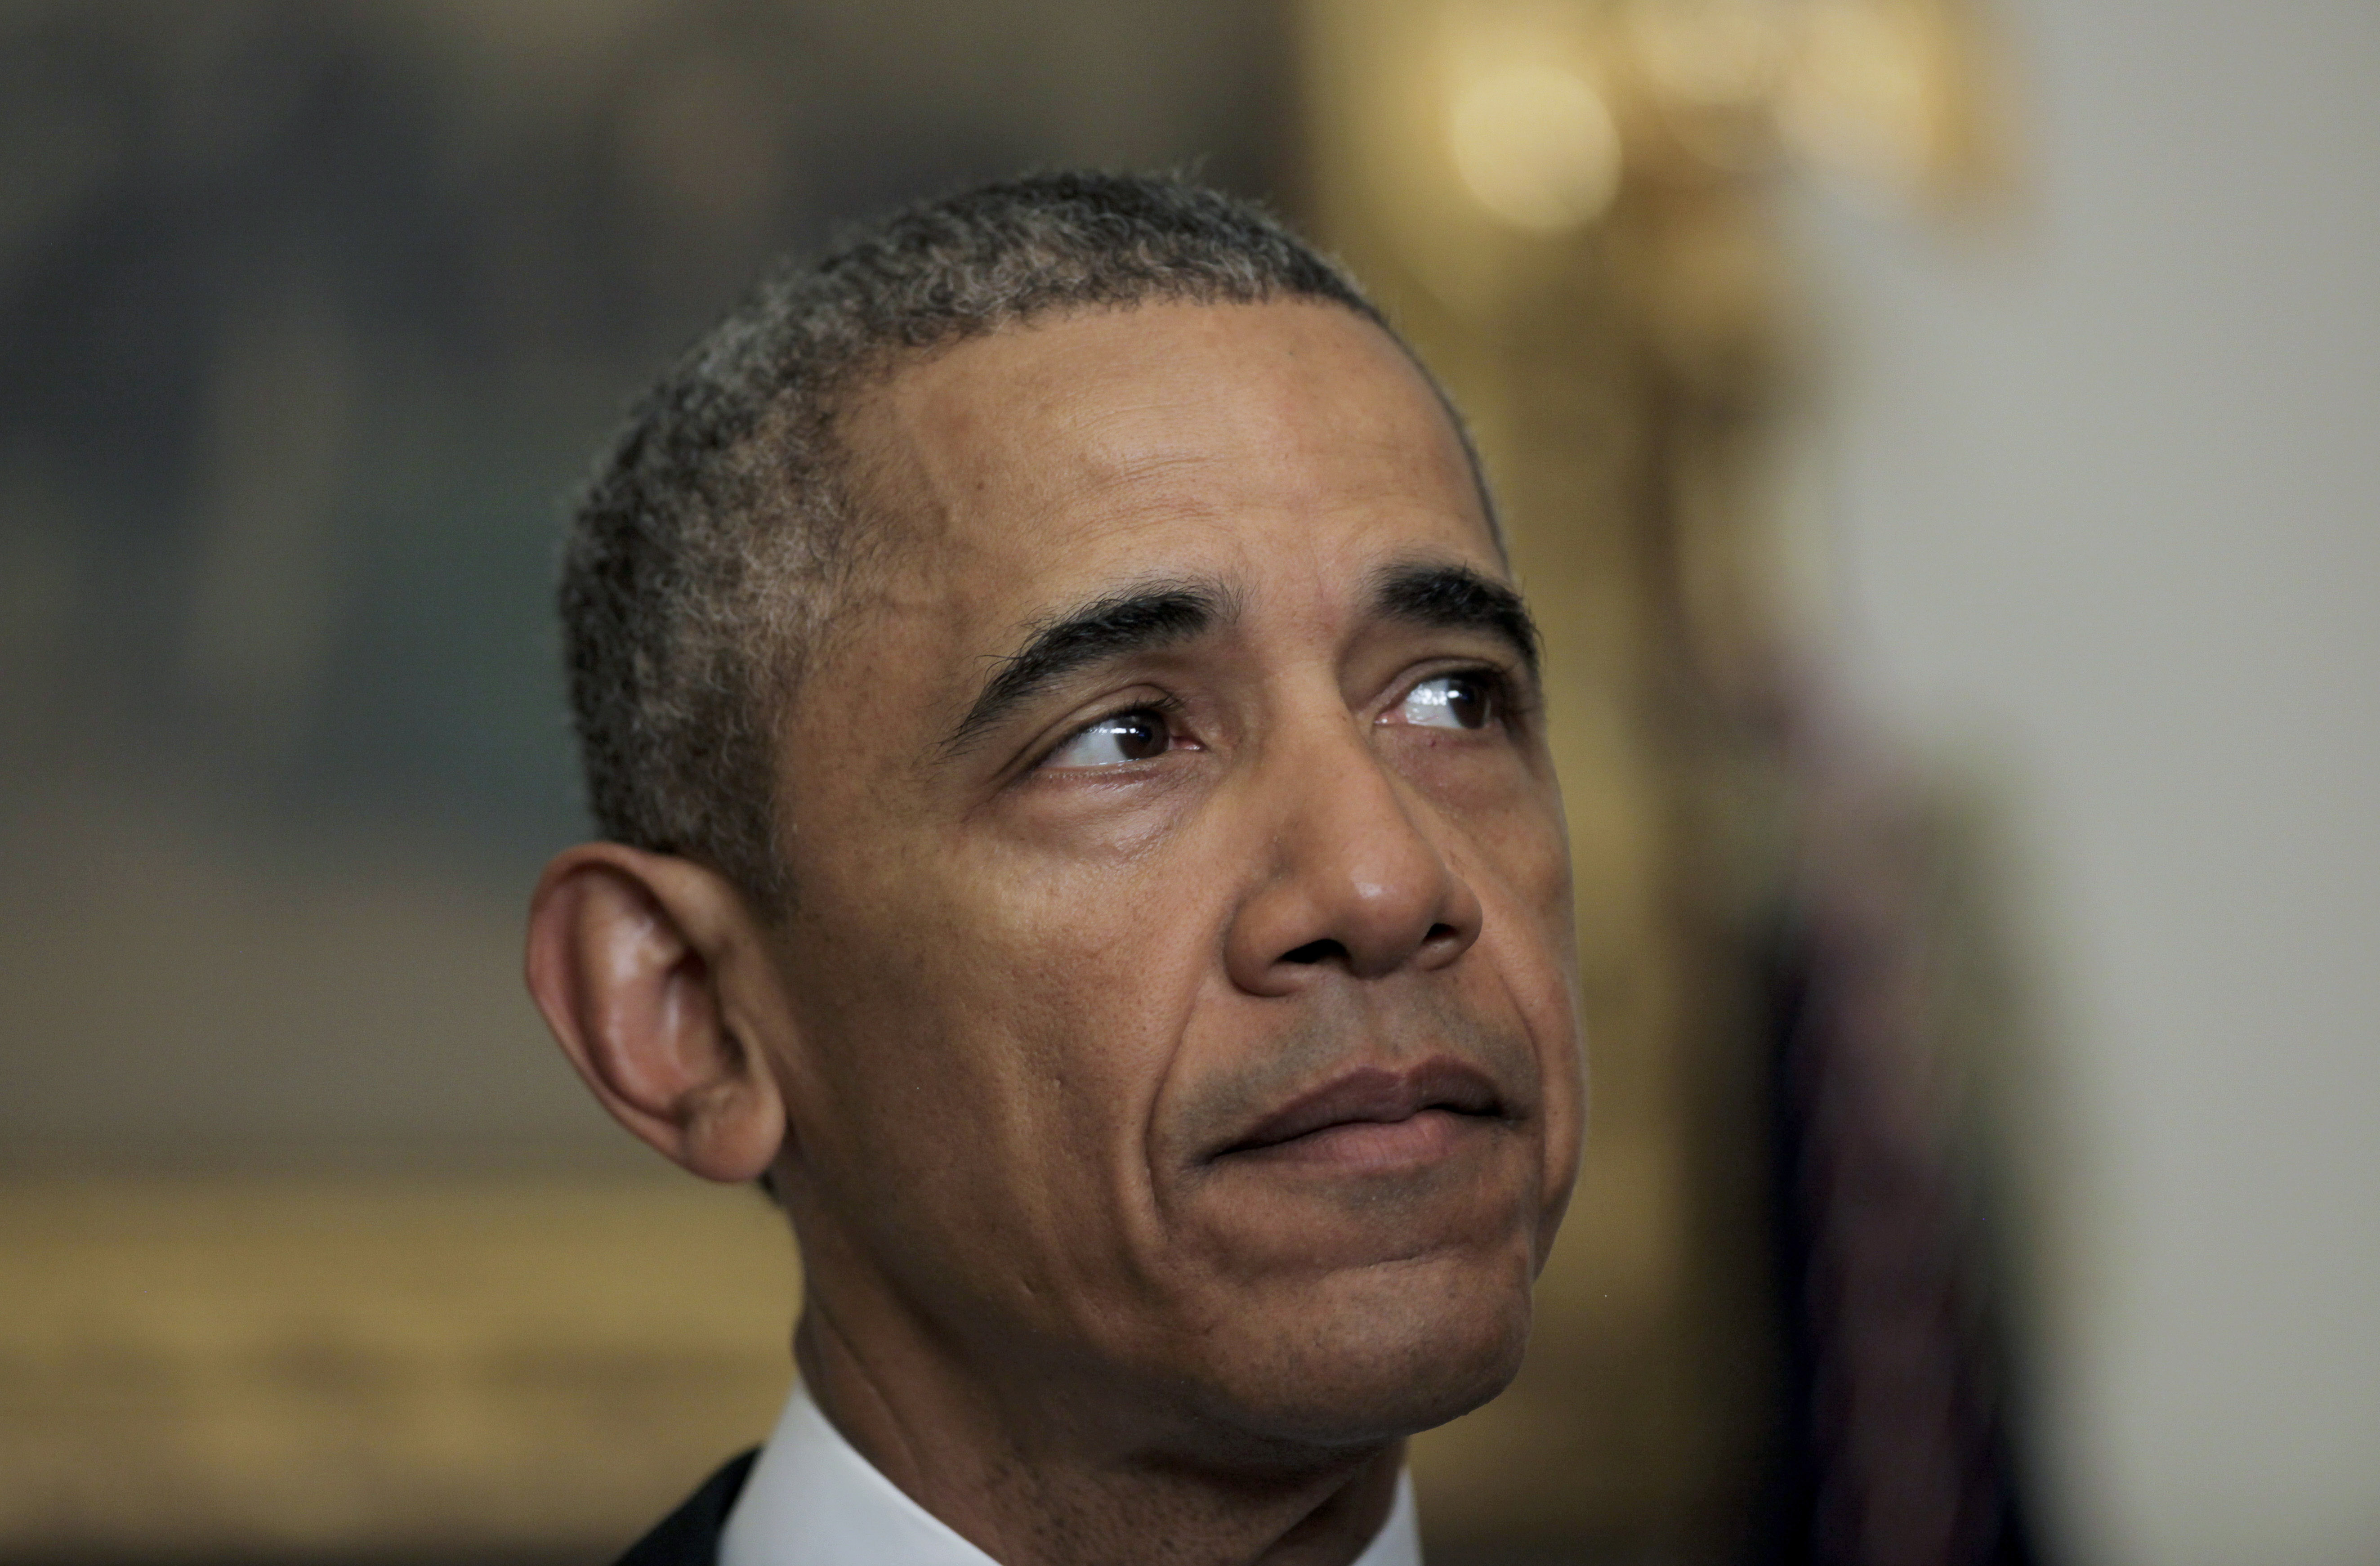 President Barack Obama's administration may have purposefully misled Congress and the American people about working to allow Iran access to the US financial market.